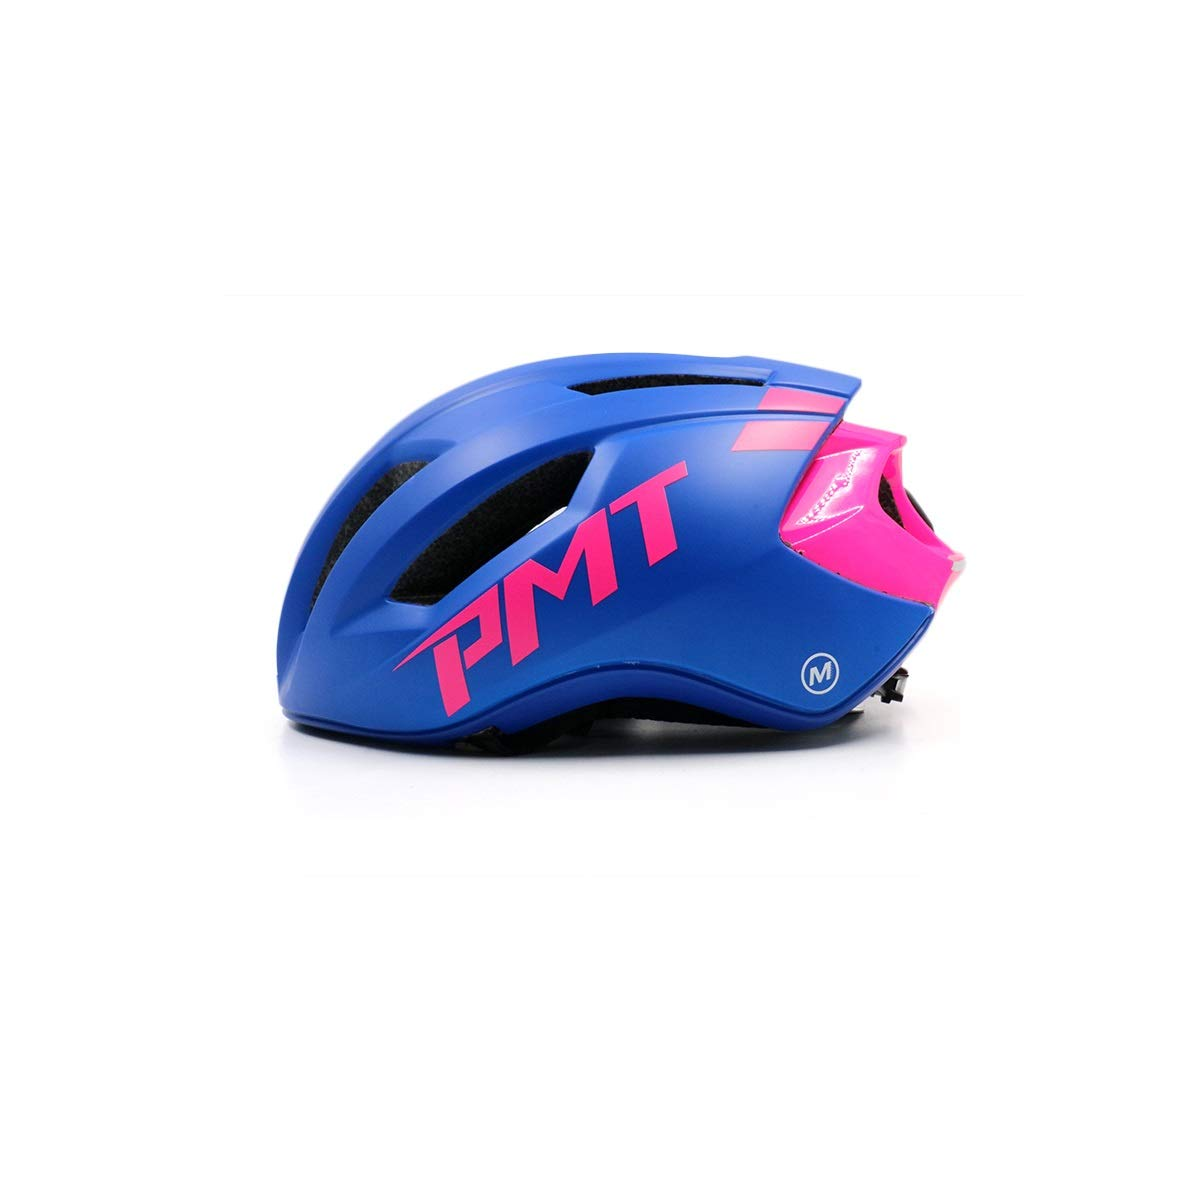 Guyuexuan Multi-Functional Bicycle Helmet, Scooter, in-Mold Reinforced Skeleton, Added Protection - Adult Size, Comfortable, Lightweight, Breathable Size can be Adjusted, The Latest Style